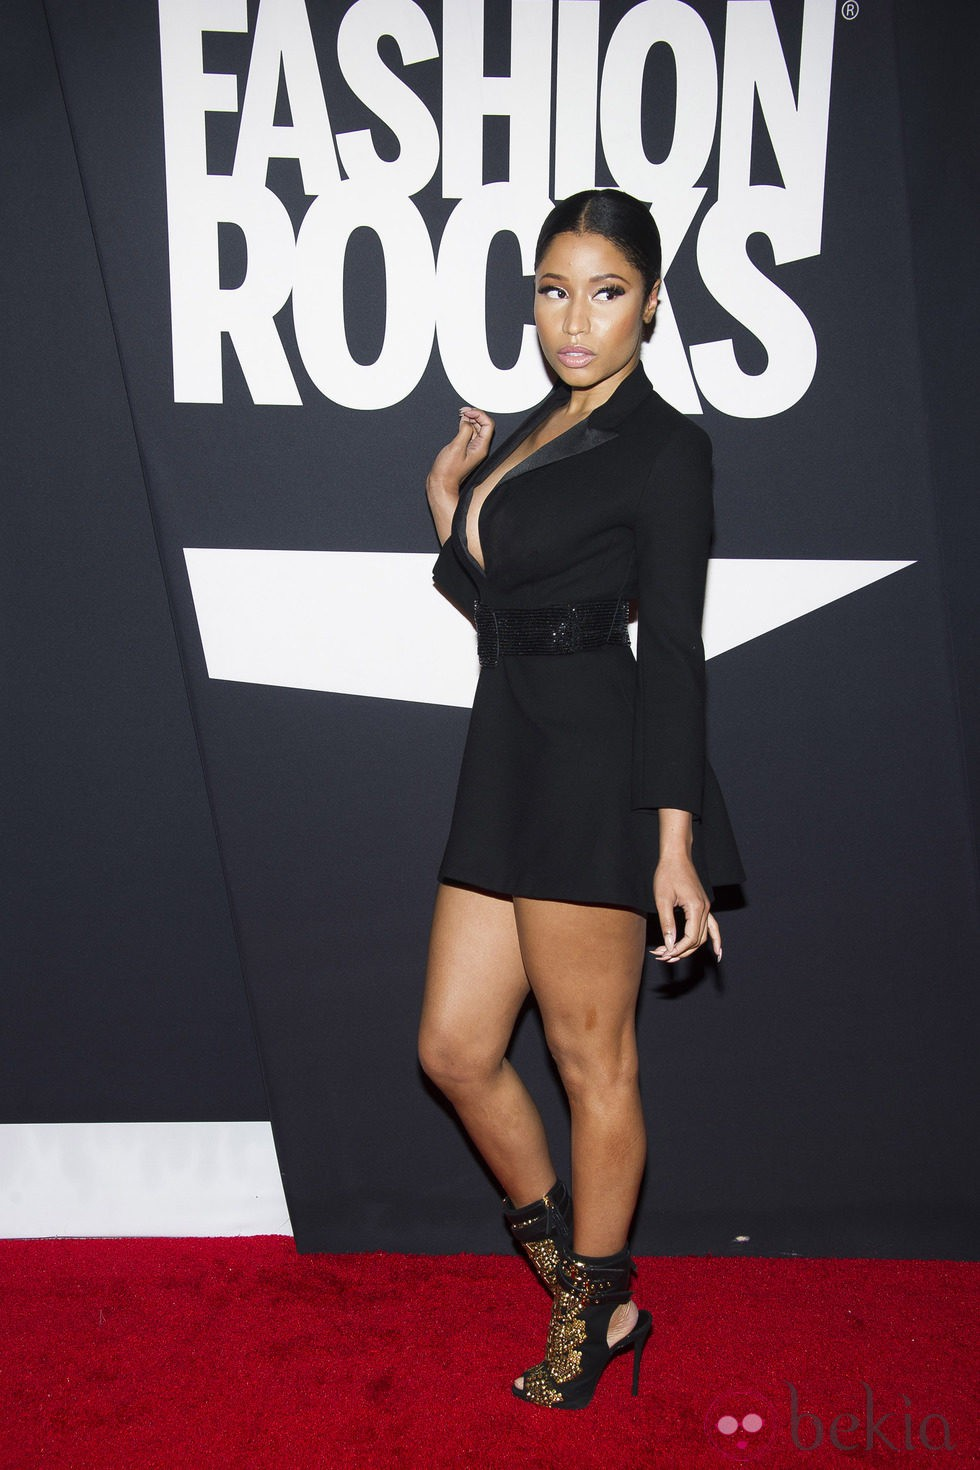 Nicki Minaj en la gala Fashion Rocks 2014